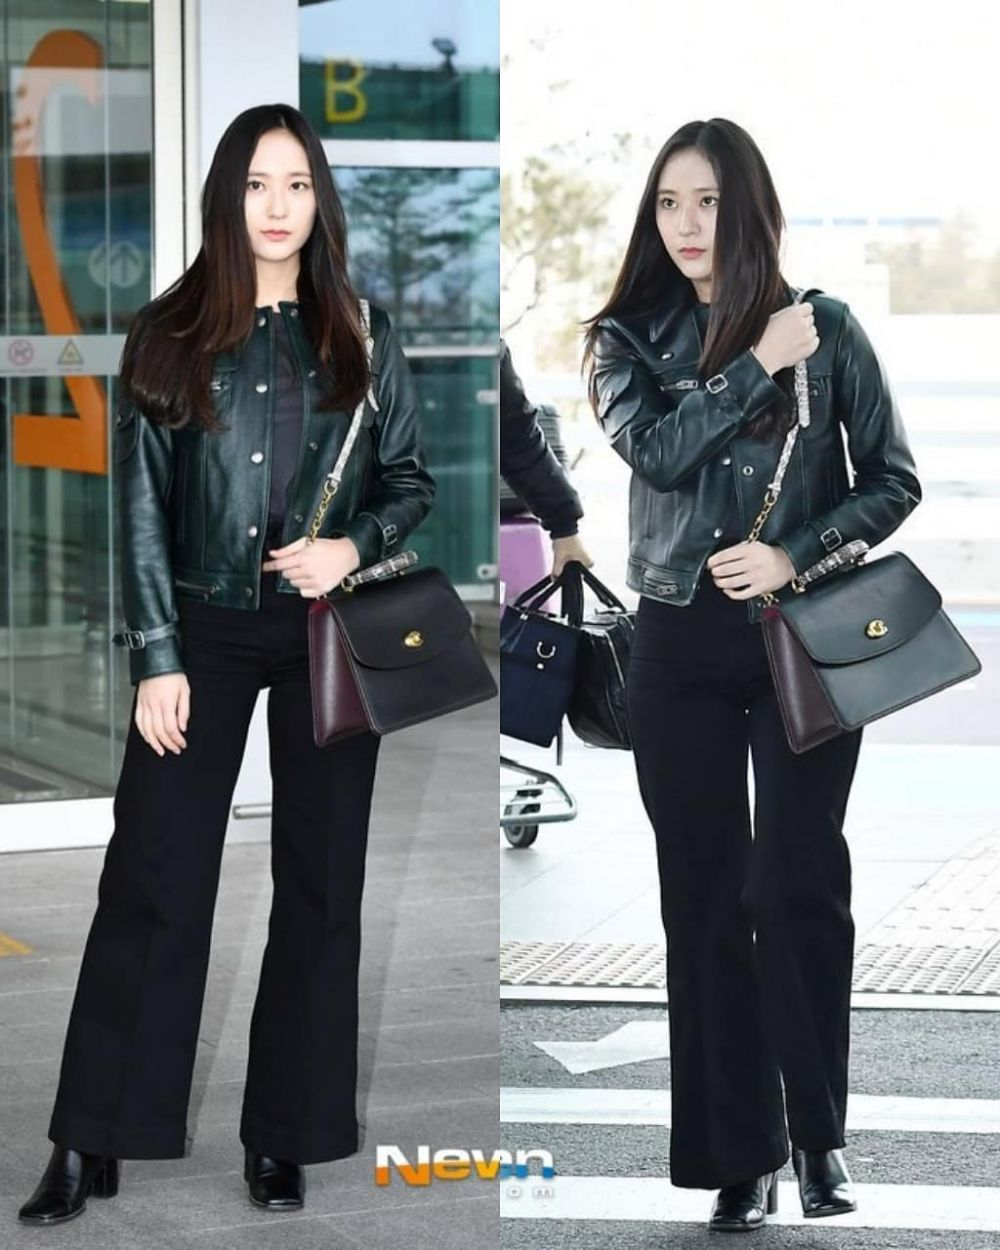 10 Ide Mix and Match Outfit dengan Outer ala Krystal Jung, Modis!